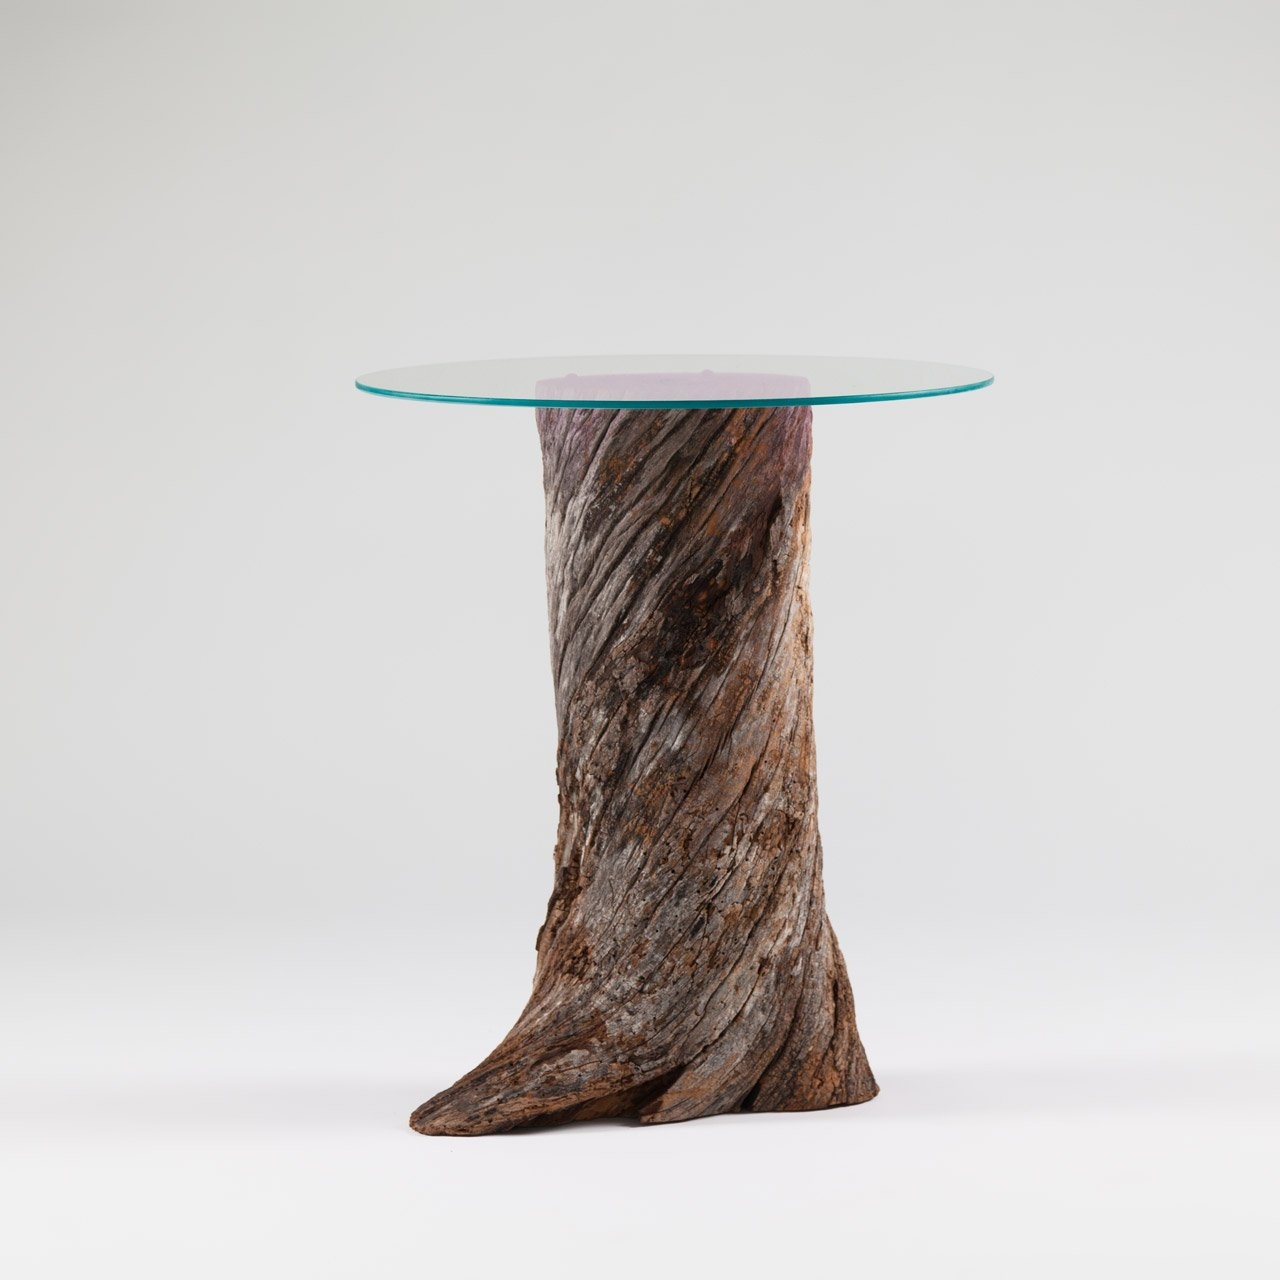 toms_alonso_furniture_4_01